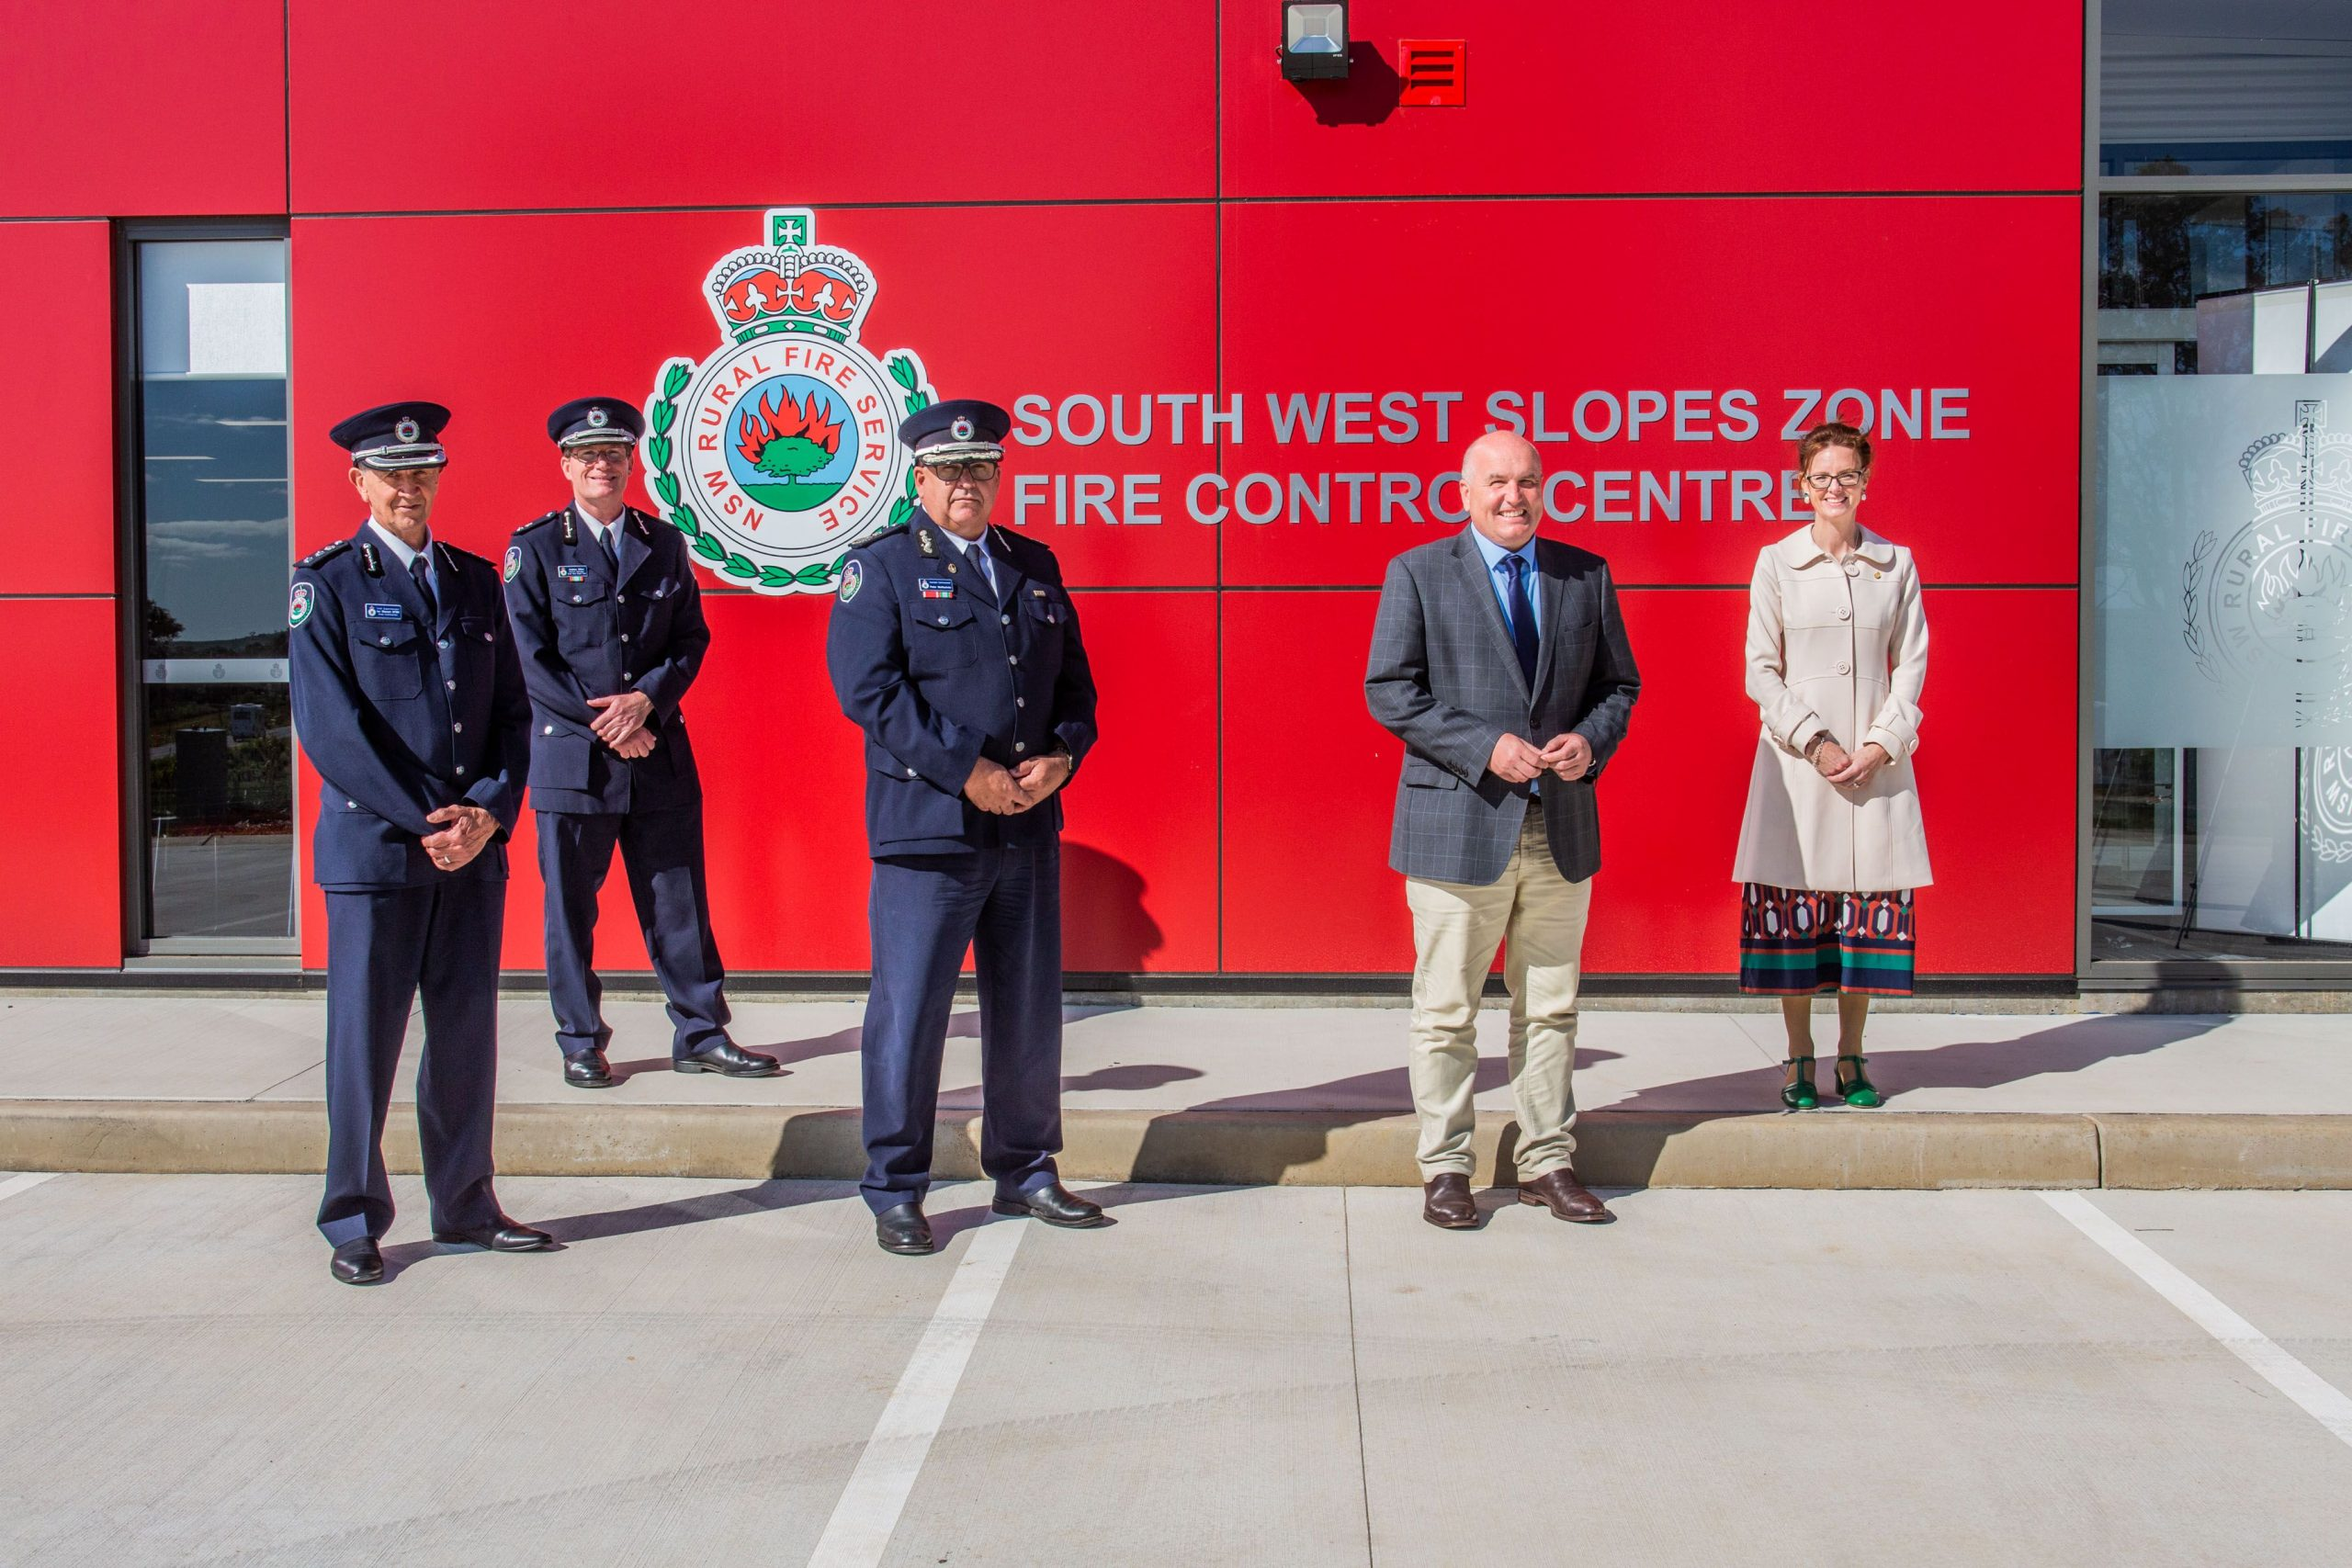 RFS Representatives, Minister Elliott and Steph Cooke stand in front of the bright red front of the fire control centre.